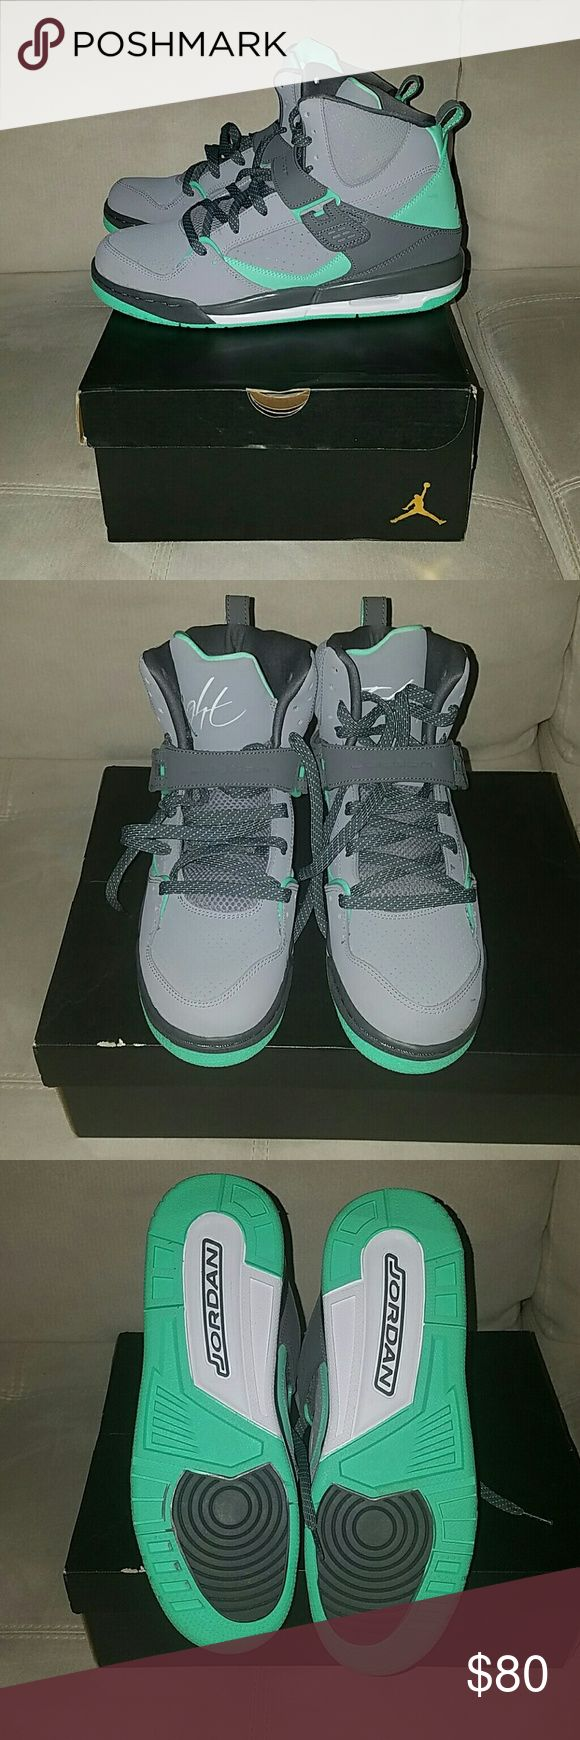 🌞🌞SUMMER '16 SALE🌞🌞 NWT kids Grey and teal Jordan flight 45 high ip gg size 9.5. Could be for a boy or girl. Brand new Jordan Shoes Sneakers